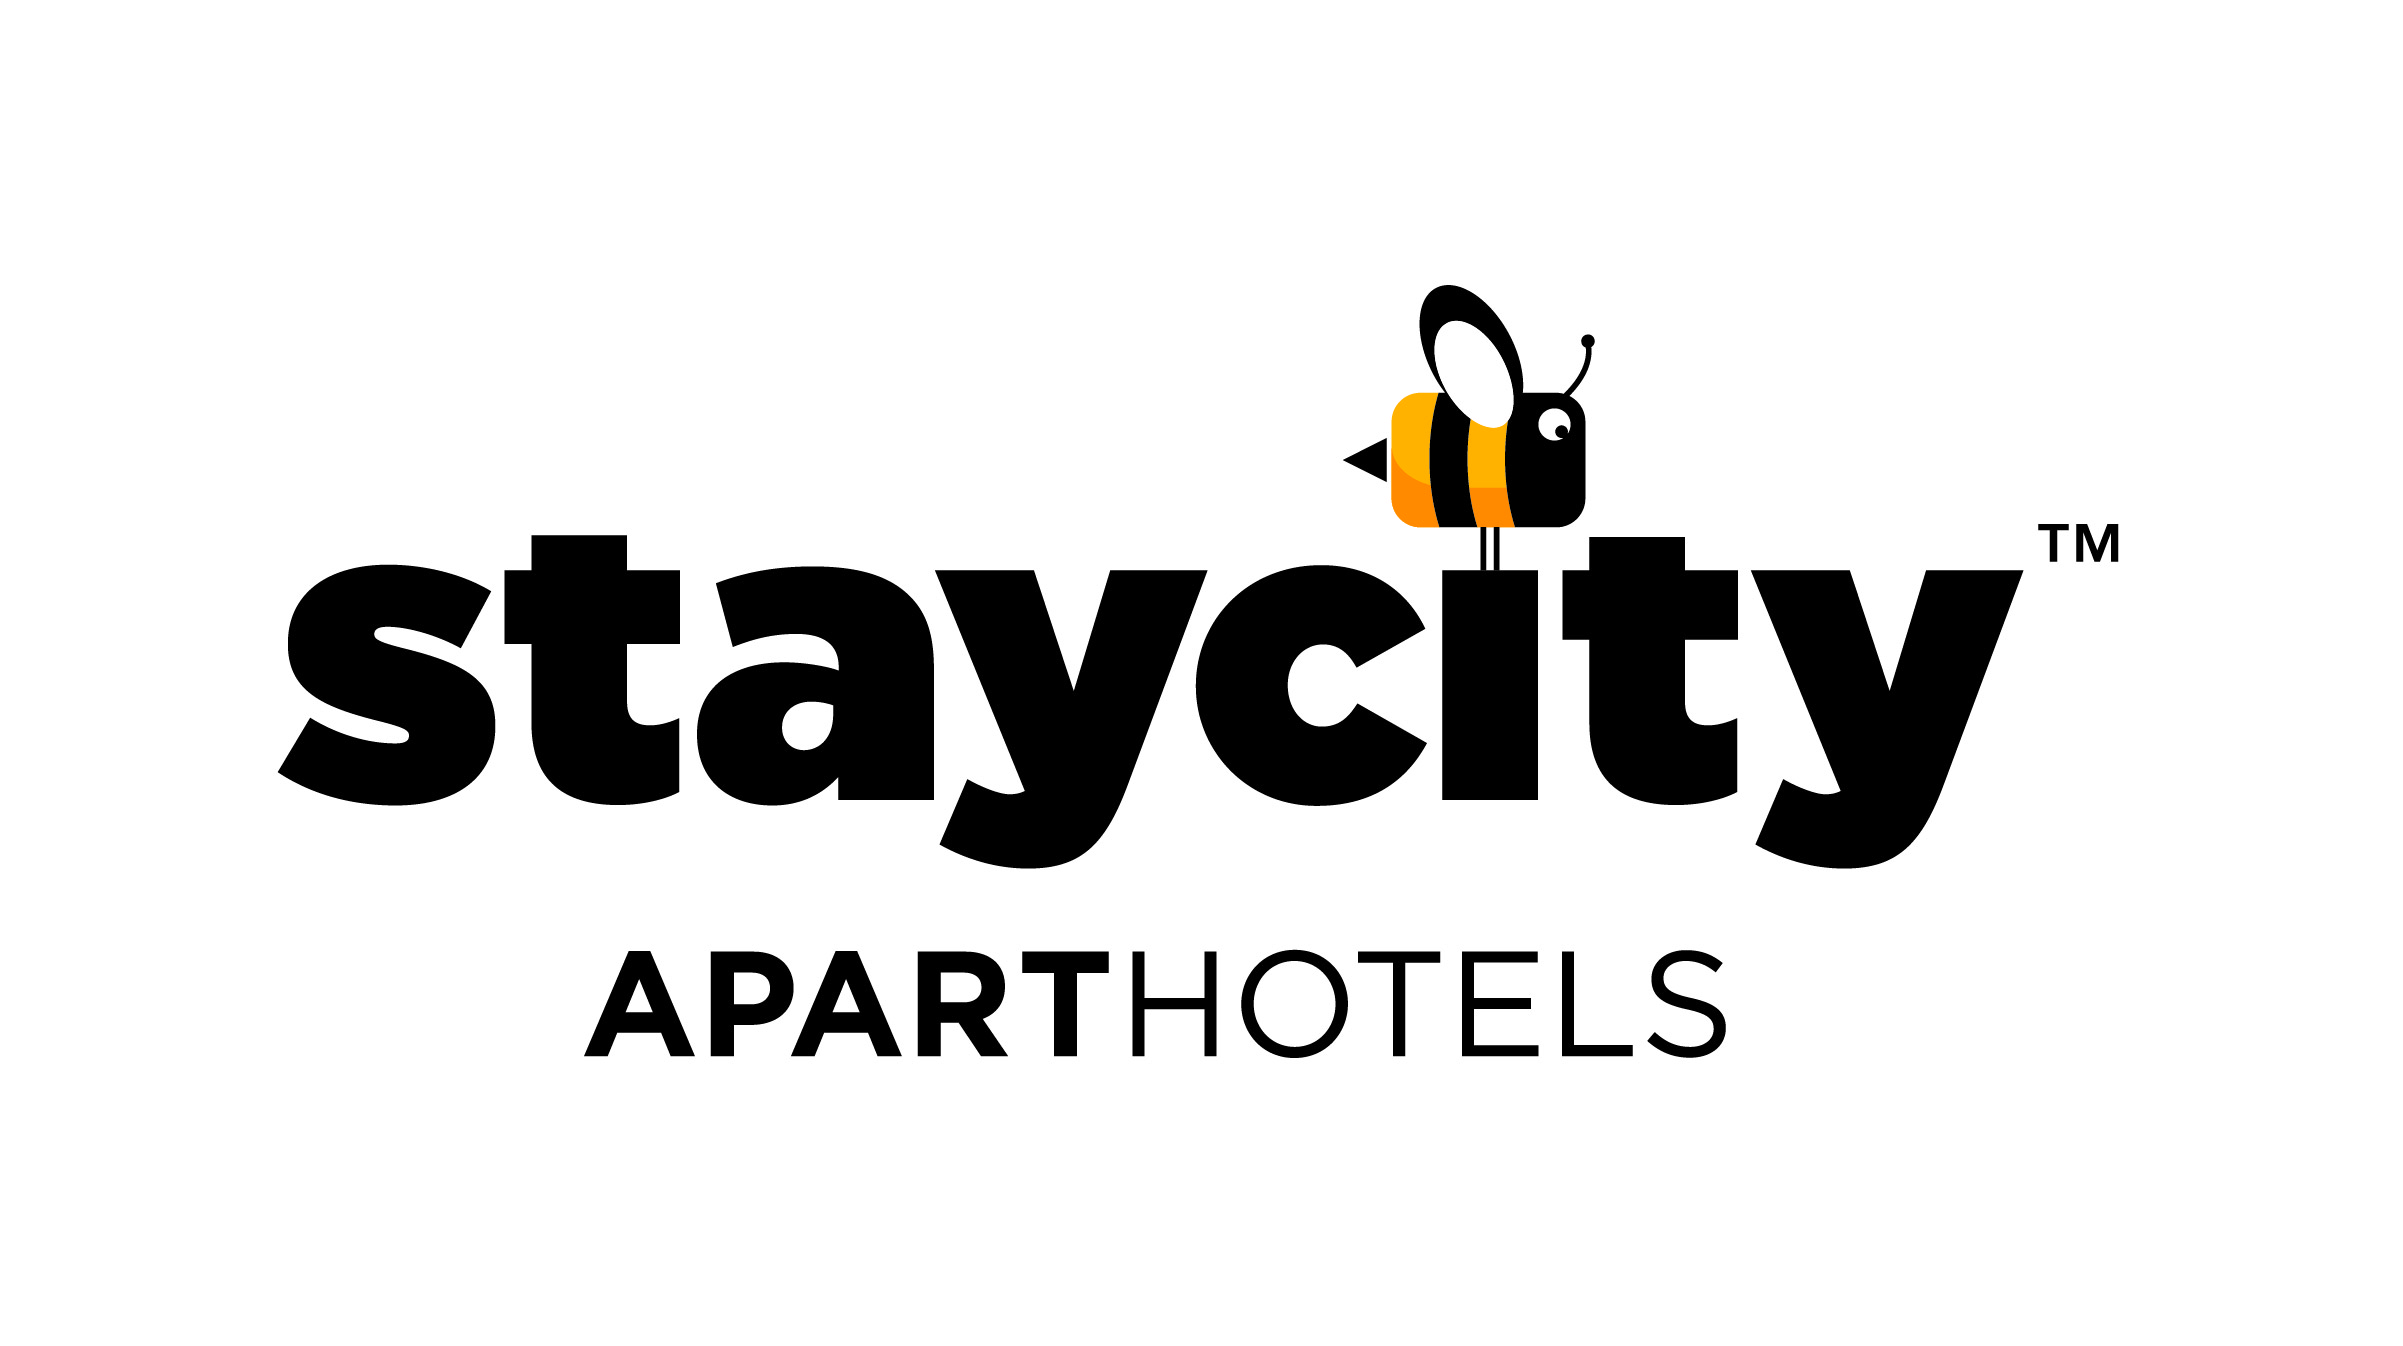 Logo STAYCITY APARTHOTELS